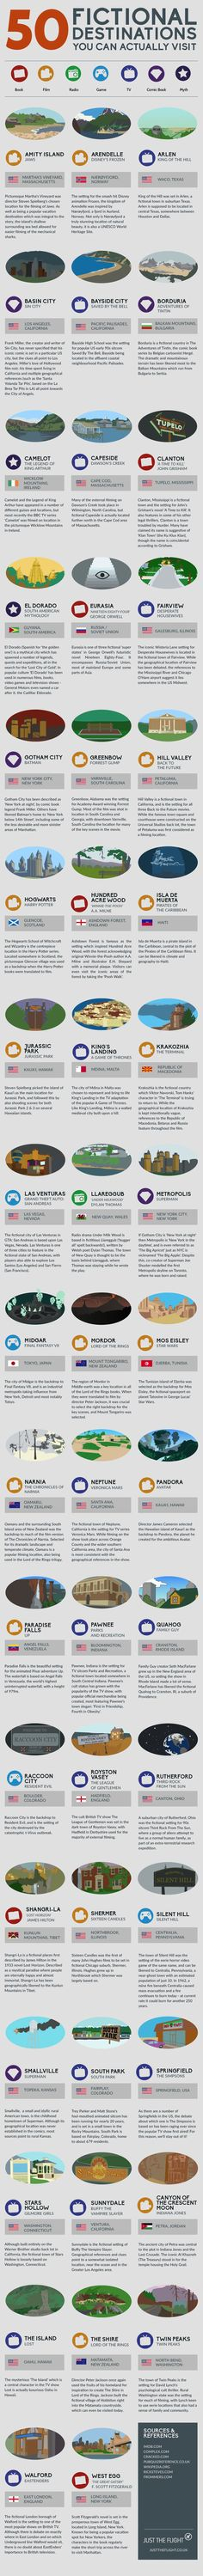 50 Fictional Destinations You Can Actually Visit #infographic #Travel #FictionalDestinations  @mainhannah @sarahline  I think we need to hit up the Neptune and Stars Hollow locations.  Roomie reunion?